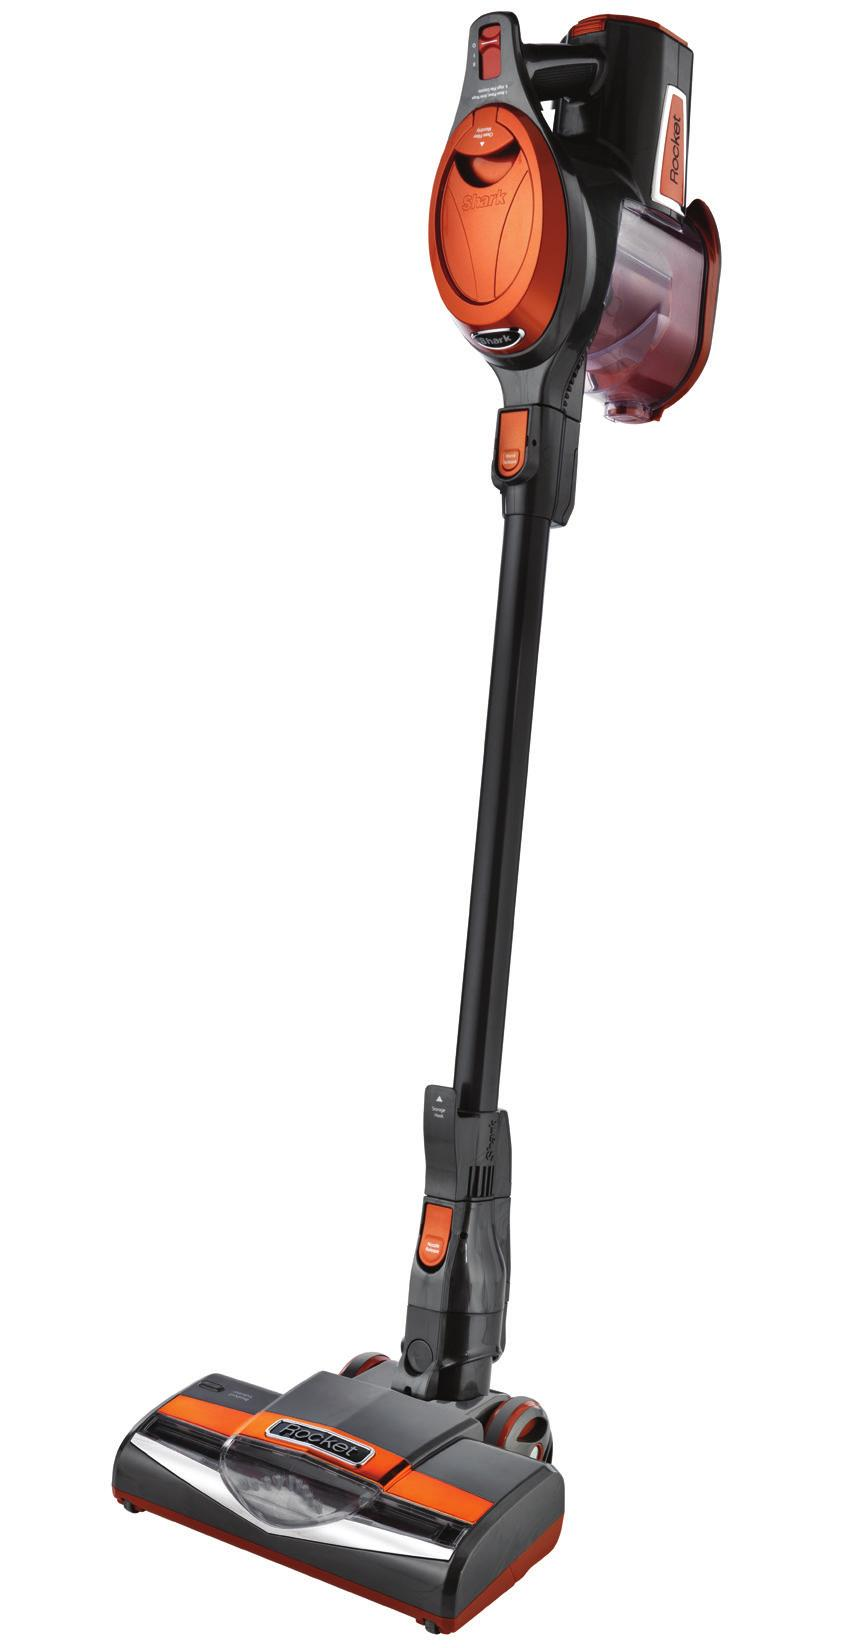 Because It S Not Just About Picking Up Dust Anymore Pdf Parts Diagram Bissell 1697 Powersteamer Pro Upright Deep Cleaner Shark Rocket Deuxepro Utra Light Rotator Powered Lift Away Vacuum Pet